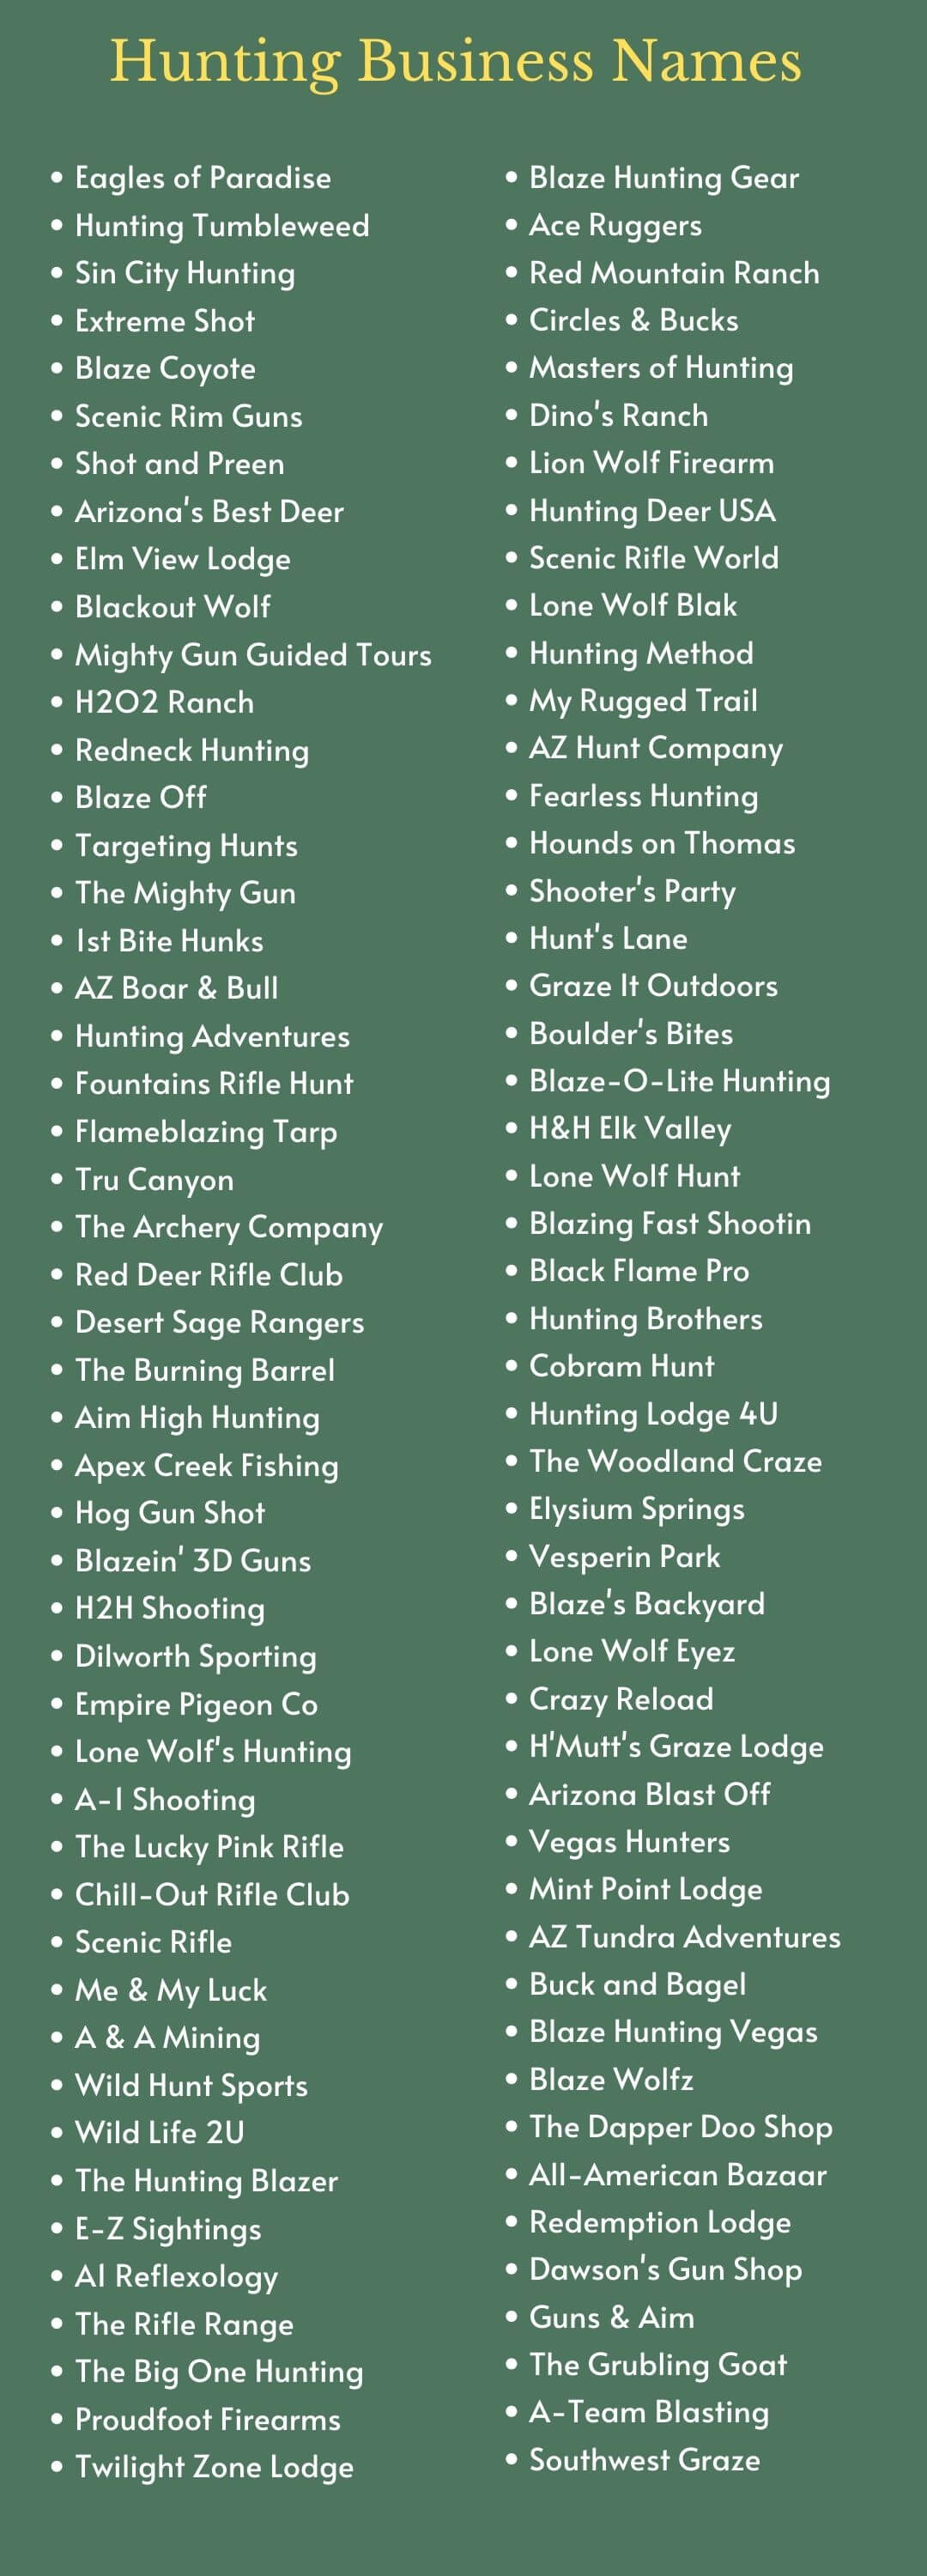 Hunting Business Names